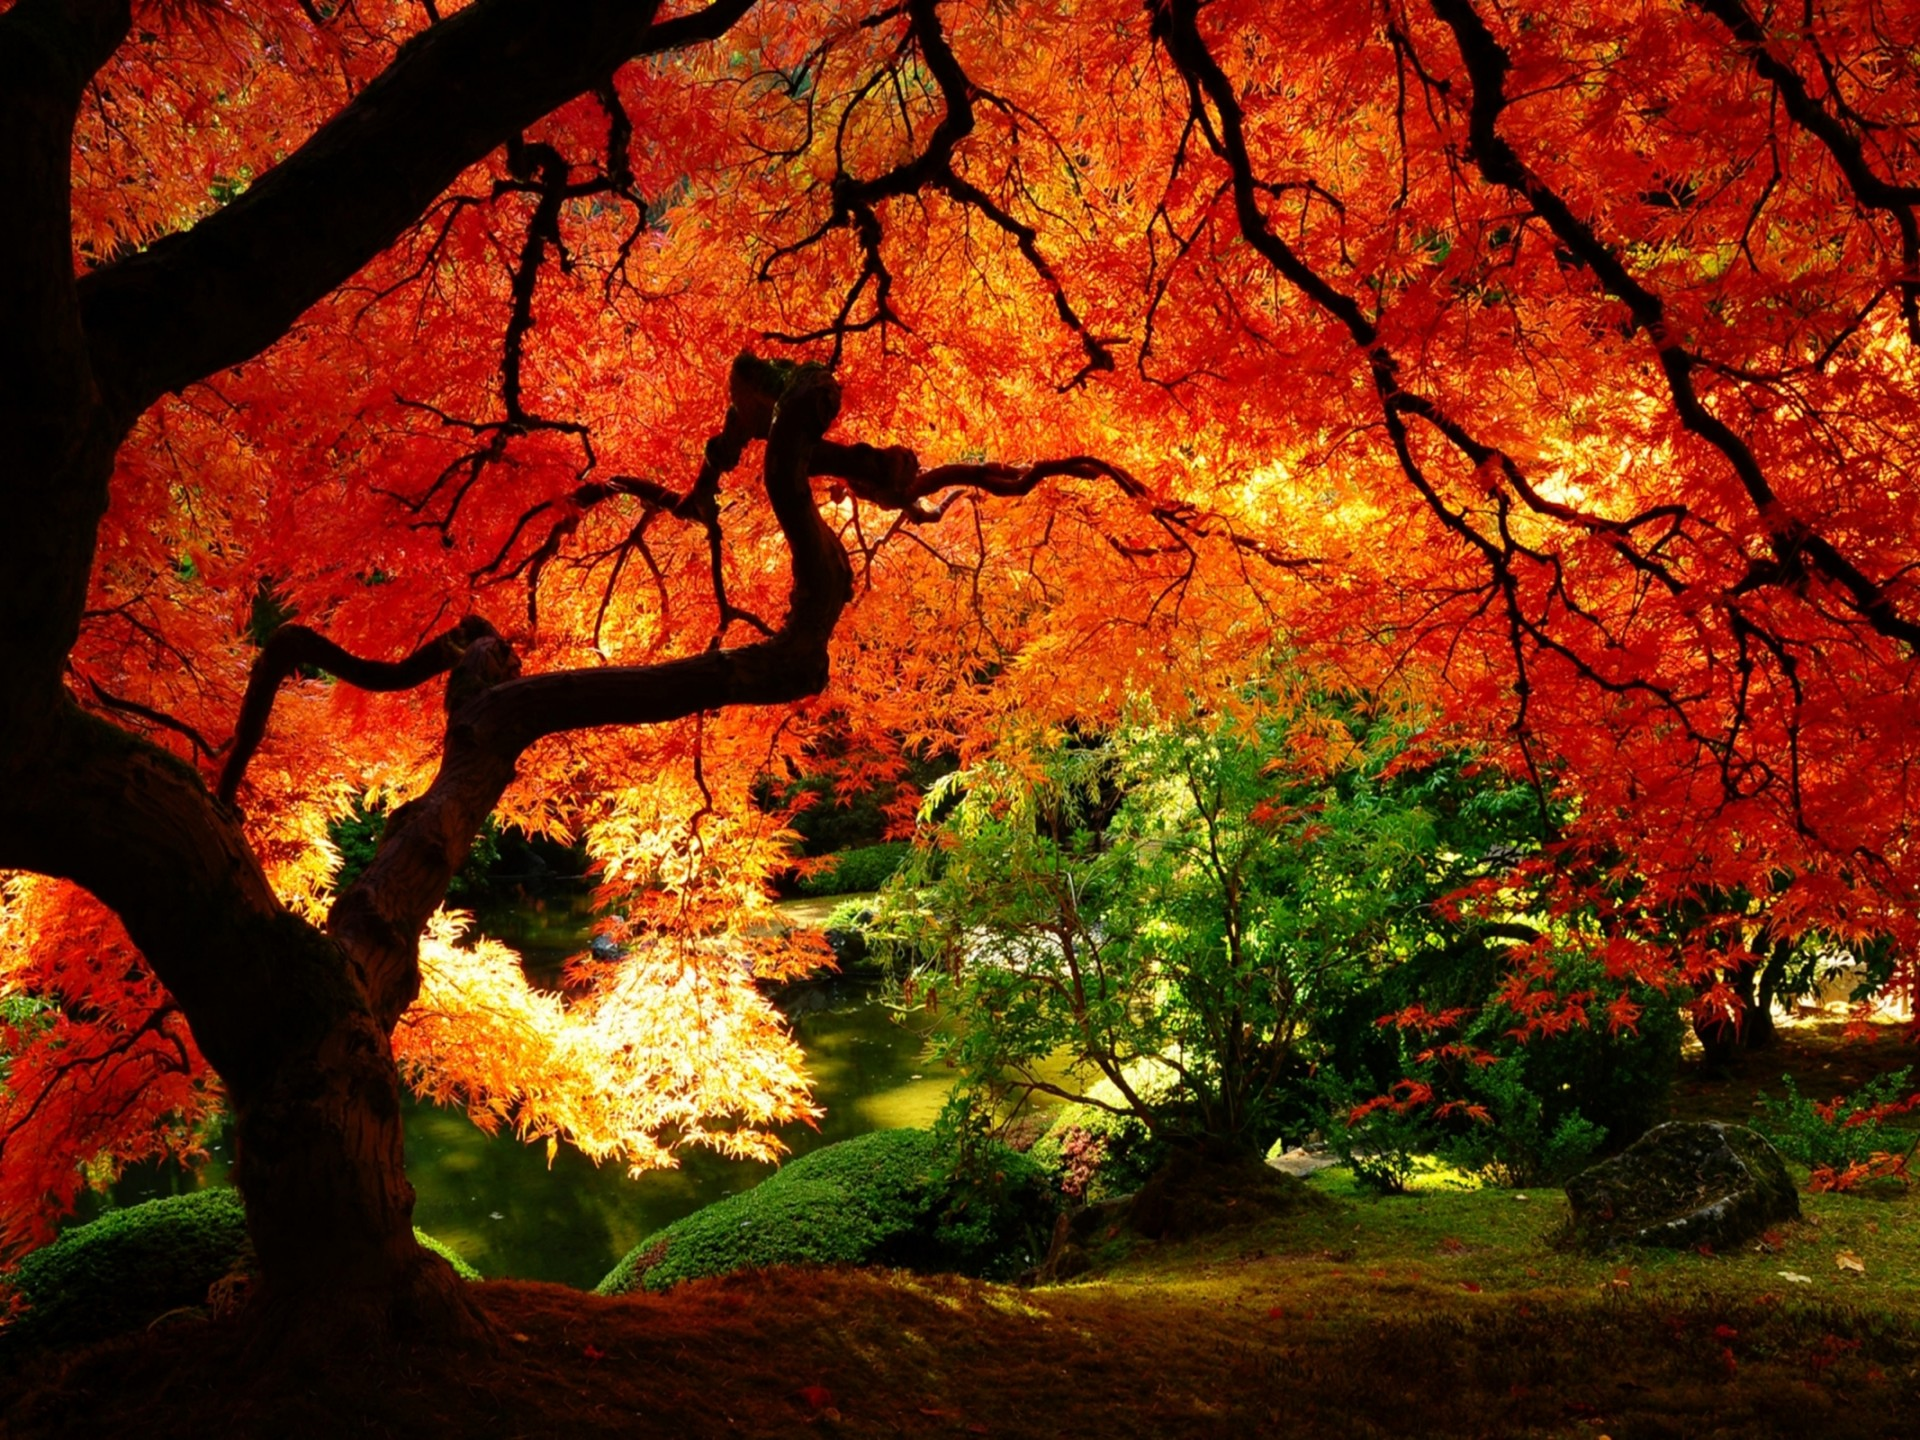 Hd Wallpapers Nature Fall Hd Images 3 Hd Wallpapers : Wallpapers13 com